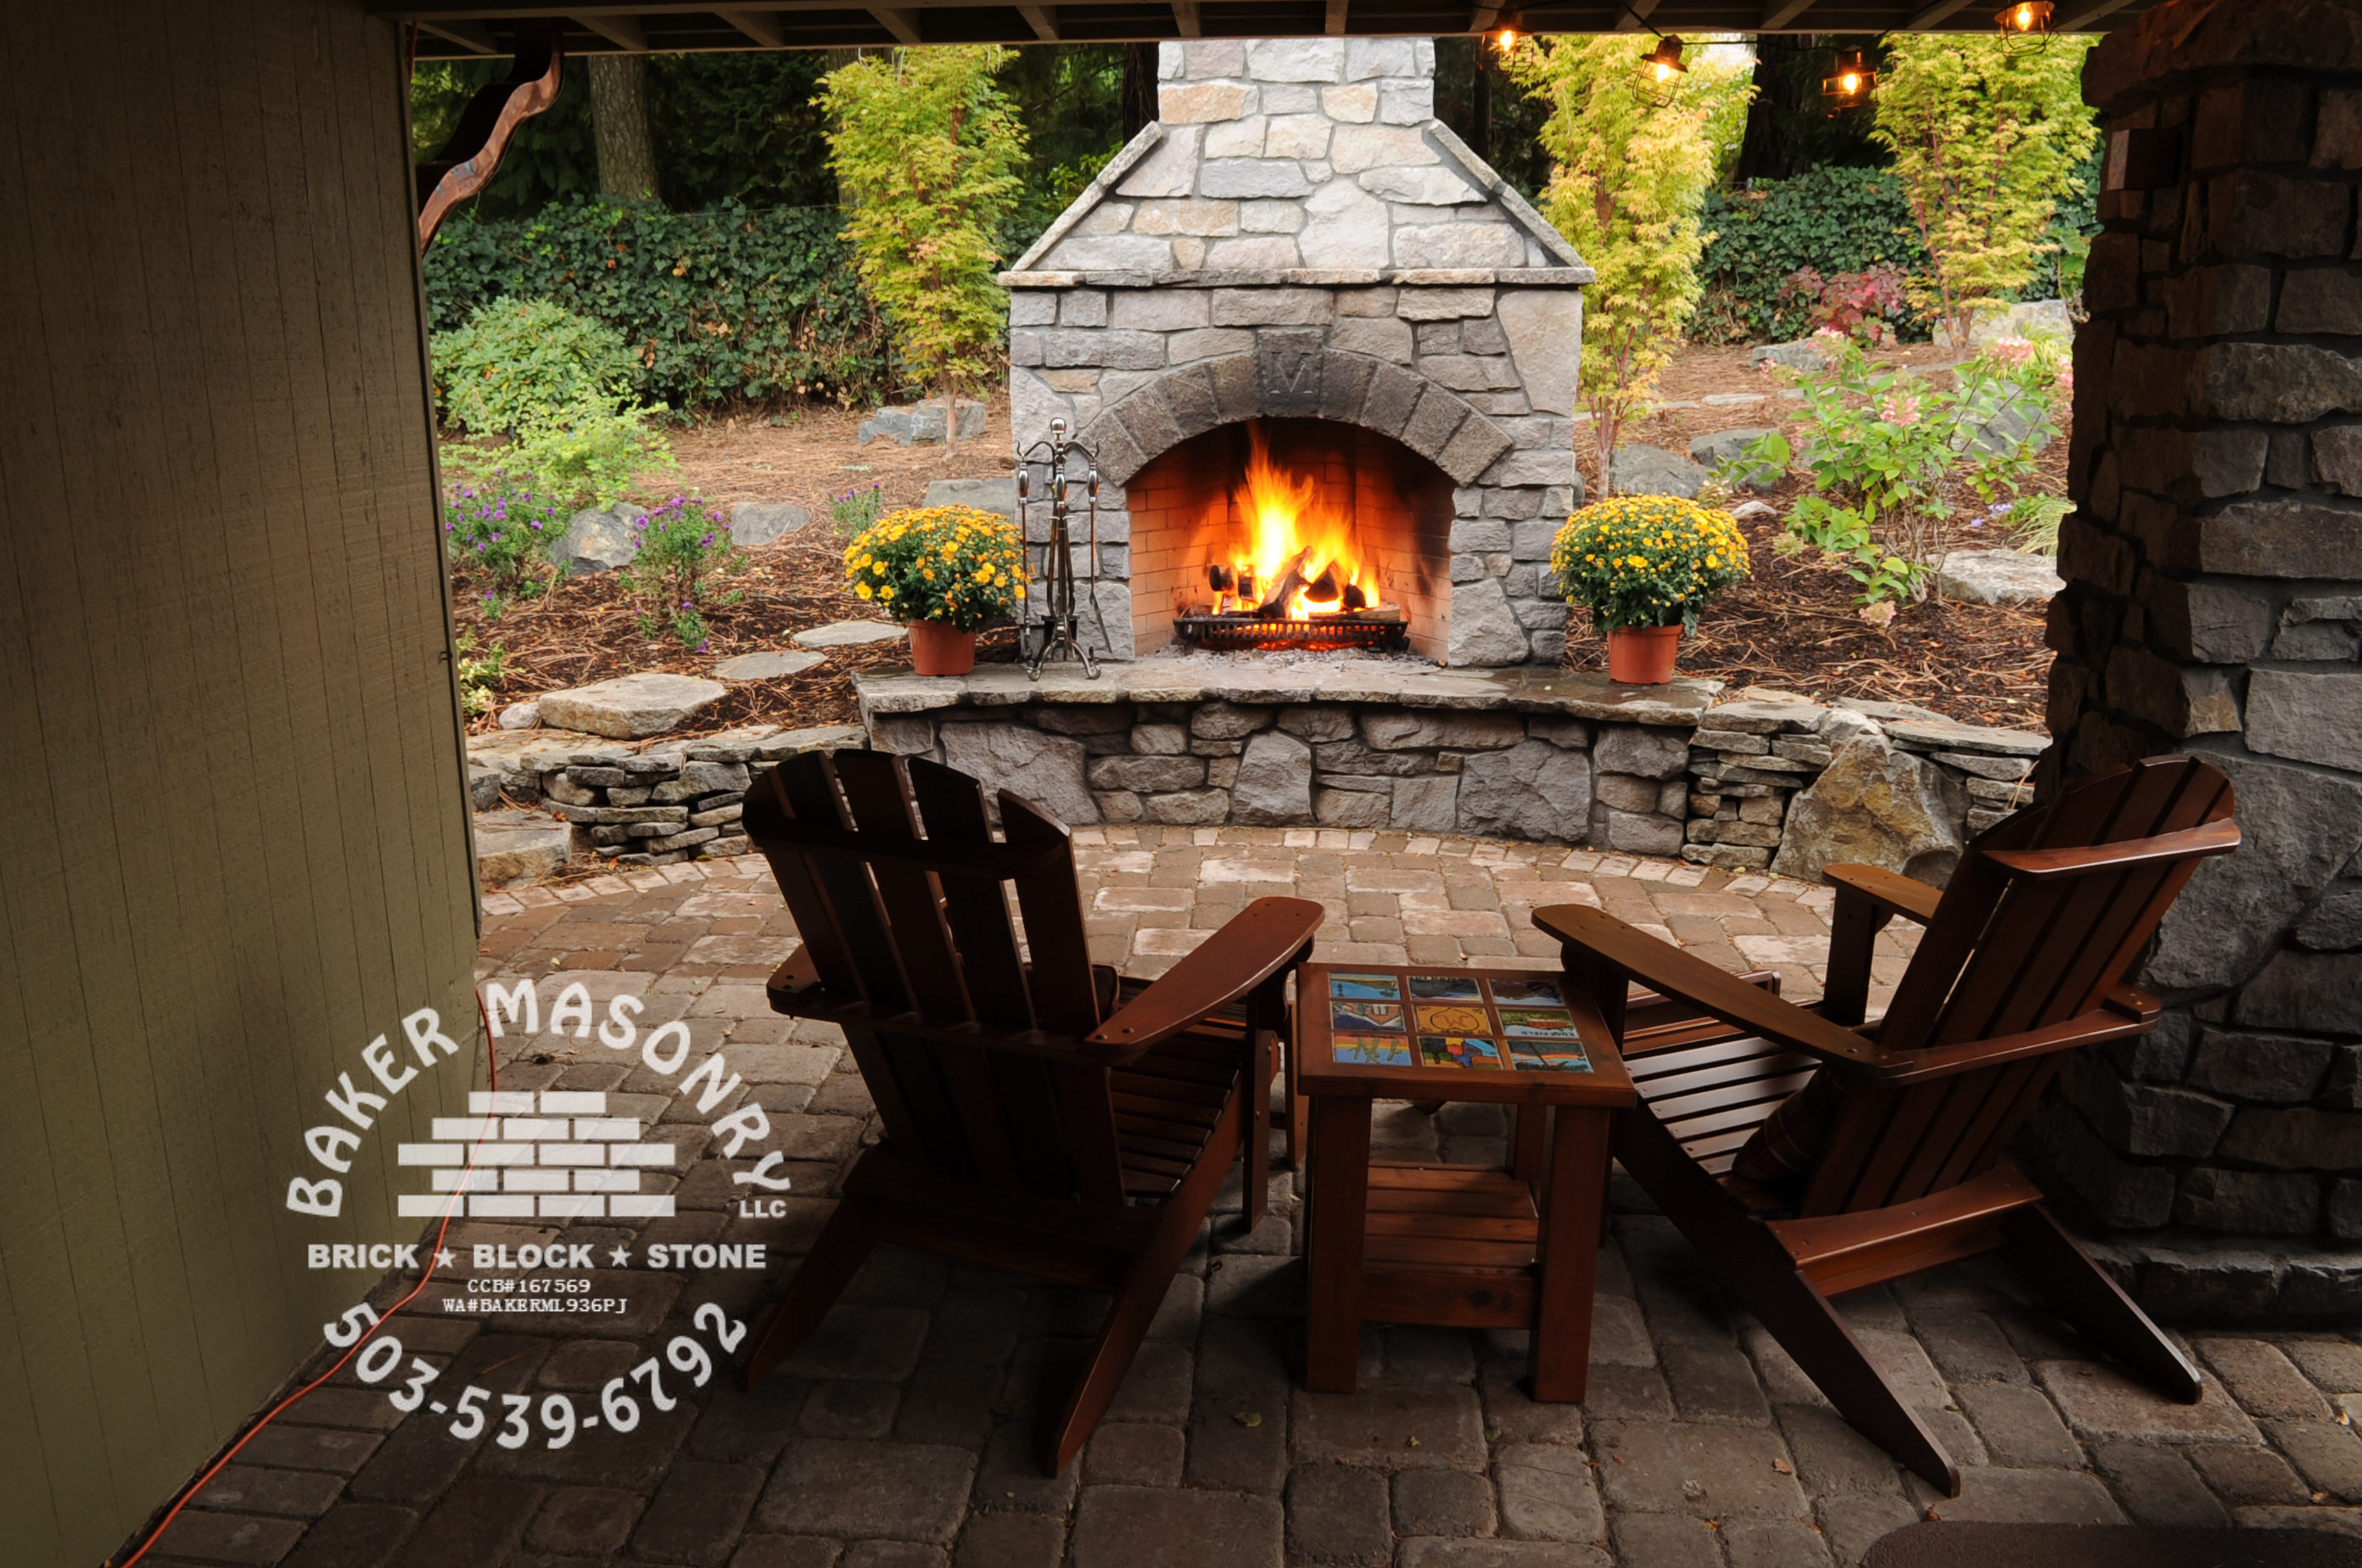 Http Www Bakermasonry Com Stone Outdoor Fireplaces Html